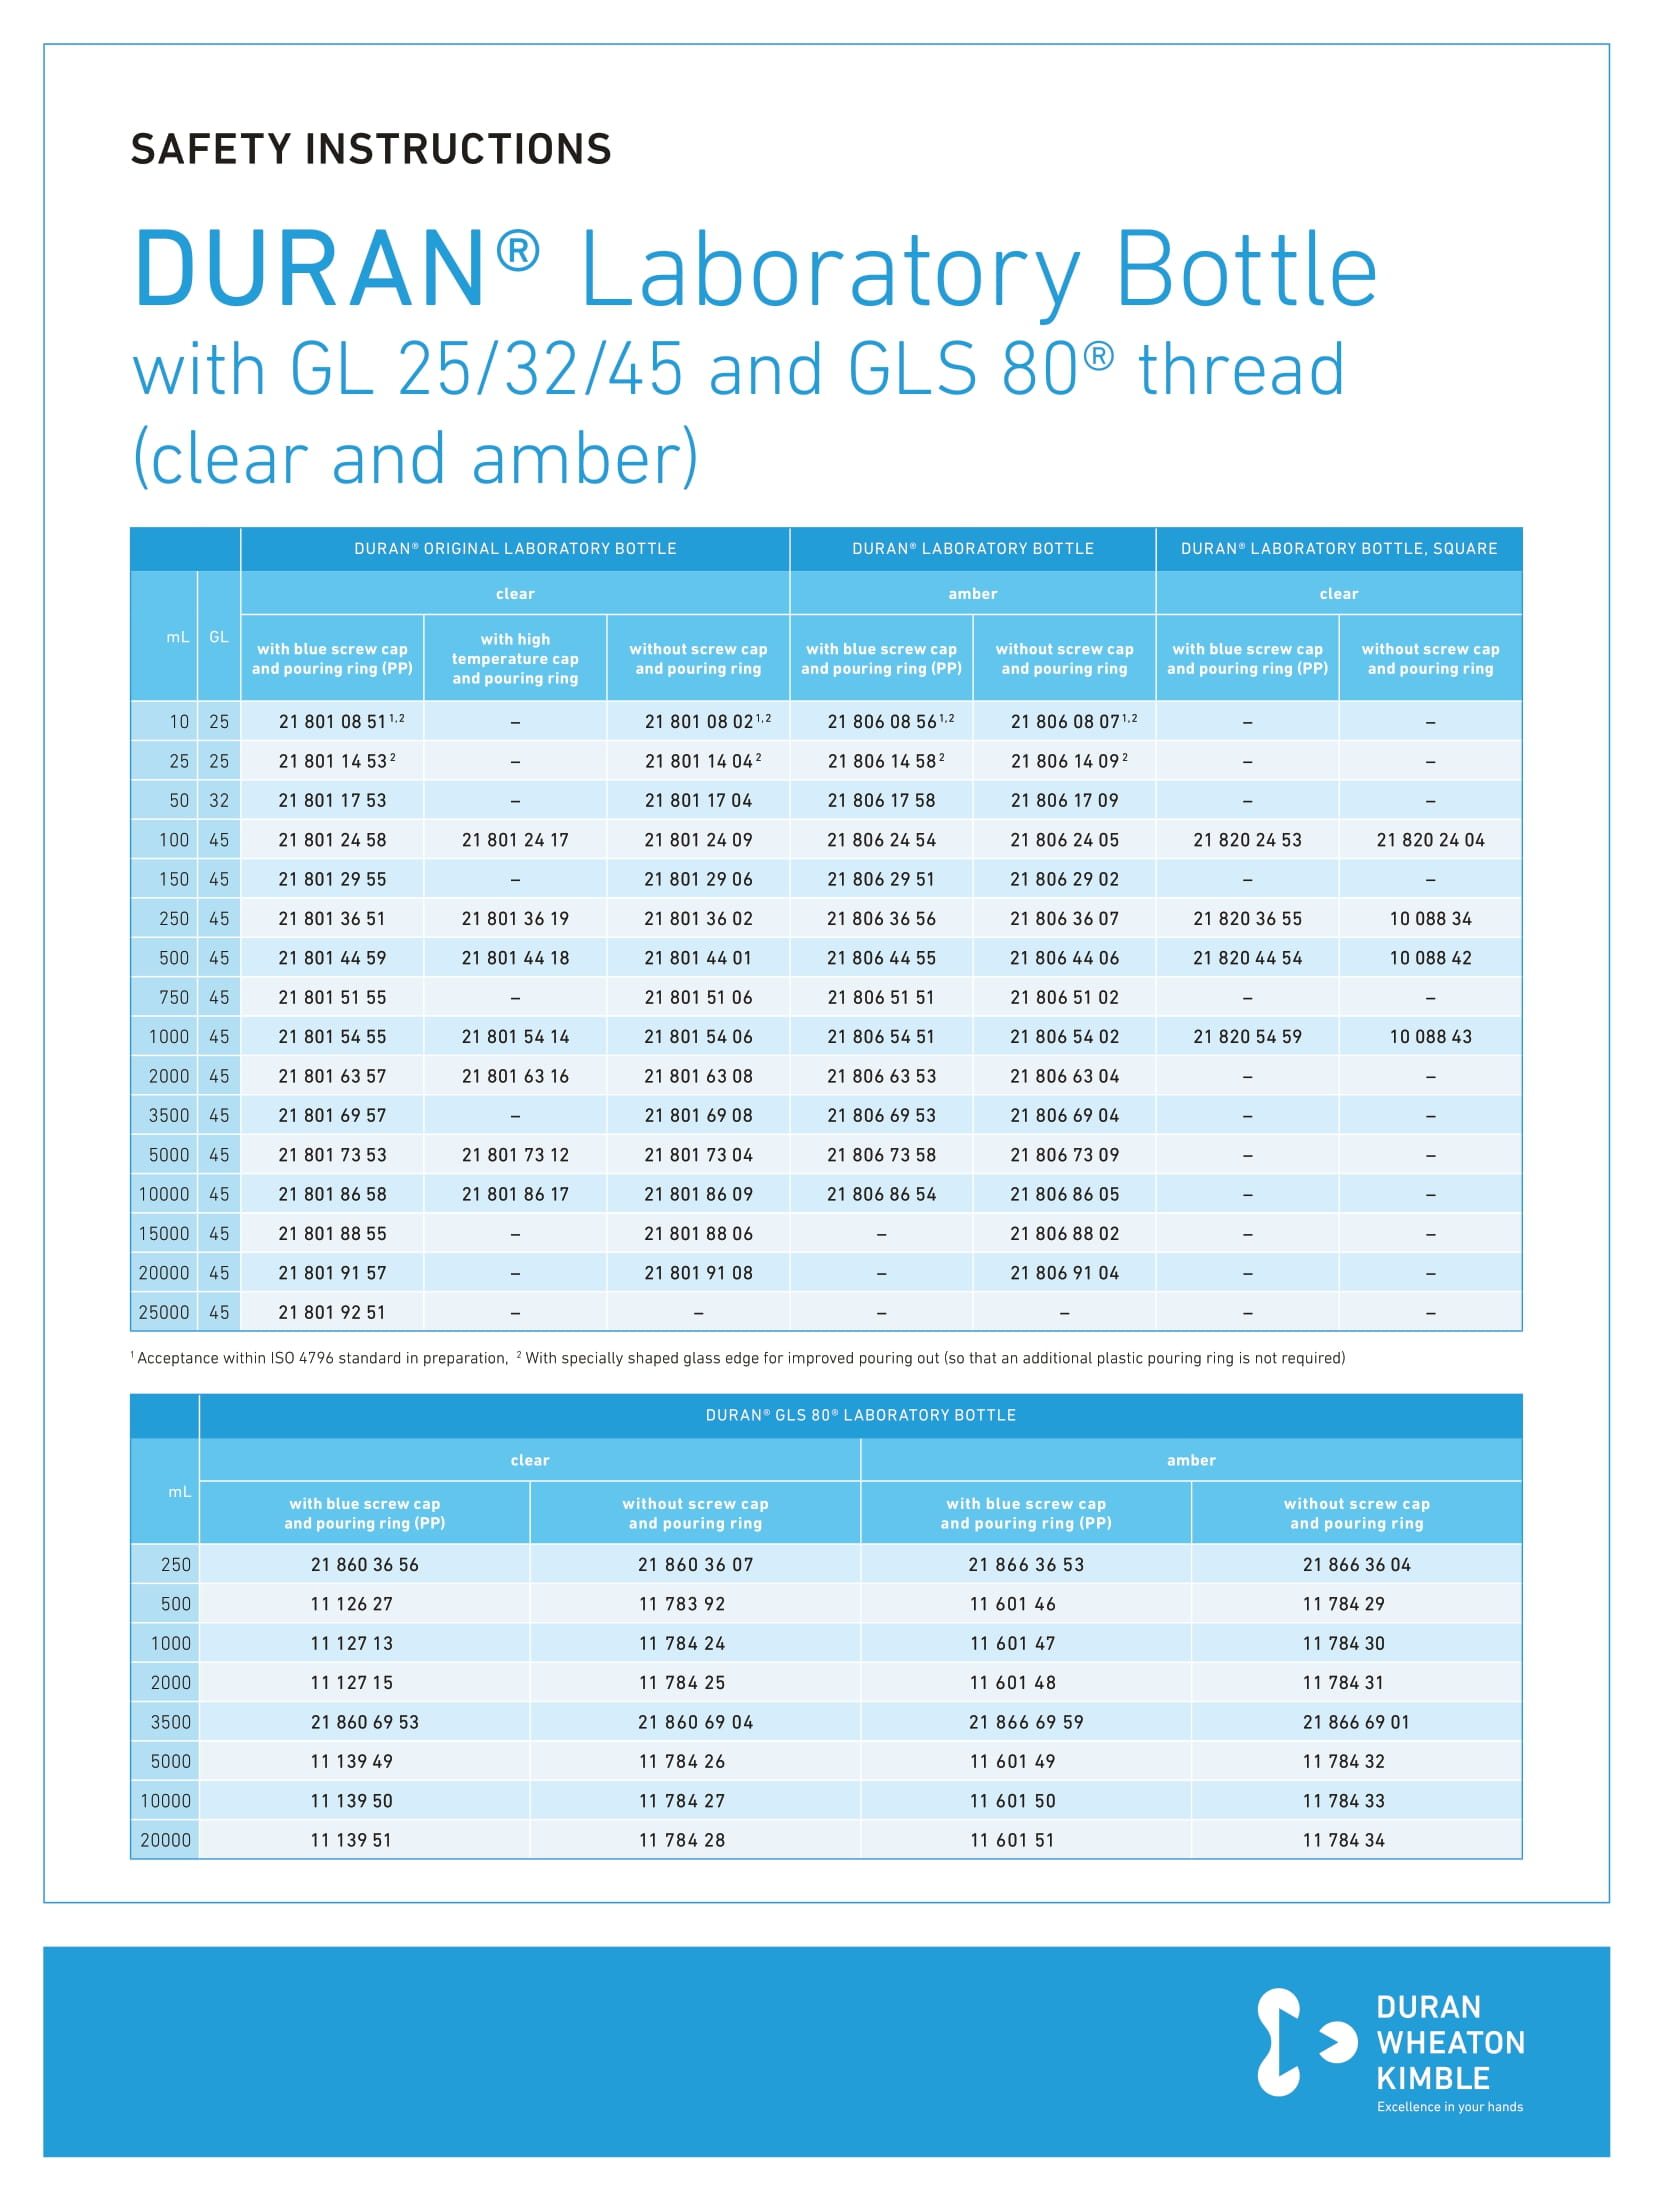 DWK SAFETY INSTRUCTIONS DURAN® Laboratory Bottle with GL 25/32/45 and GLS 80® thread